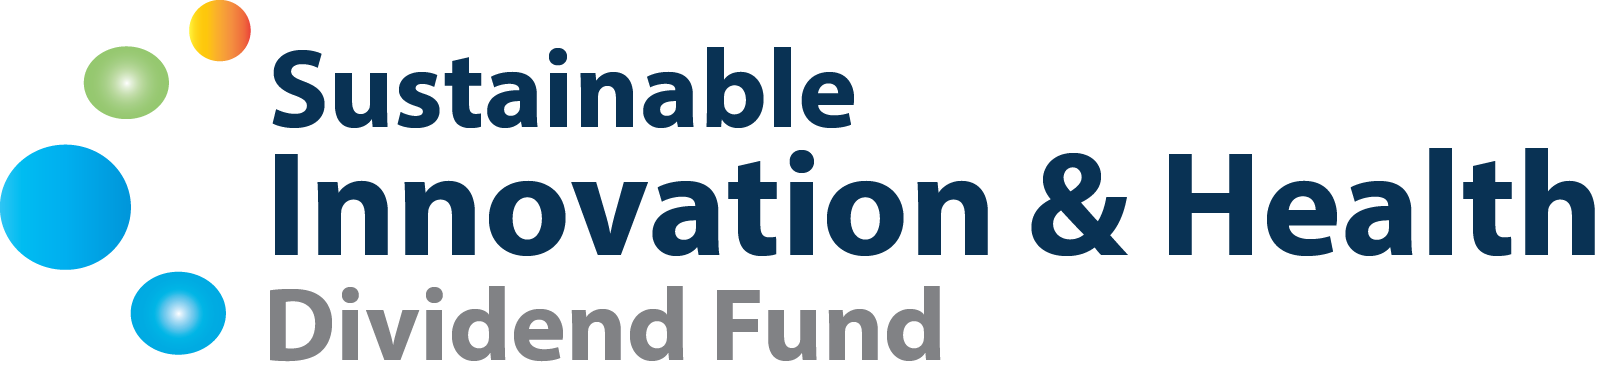 Sustainable Innovation & Health Dividend Fund Normal Course Issuer Bid